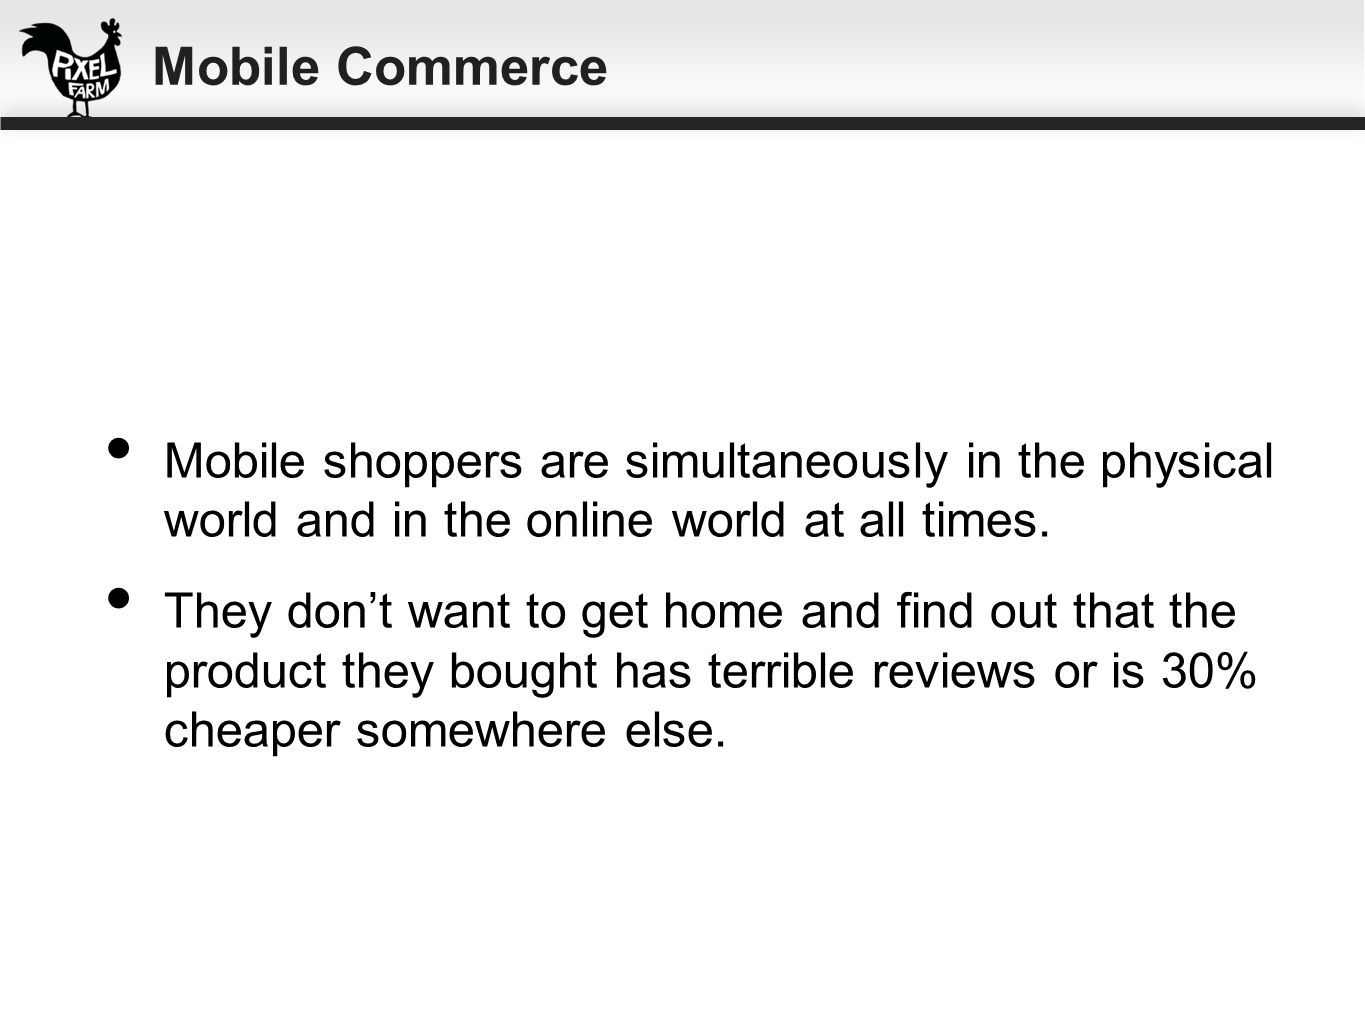 Mobile Commerce Mobile shoppers are simultaneously in the physical world and in the online world at all times.